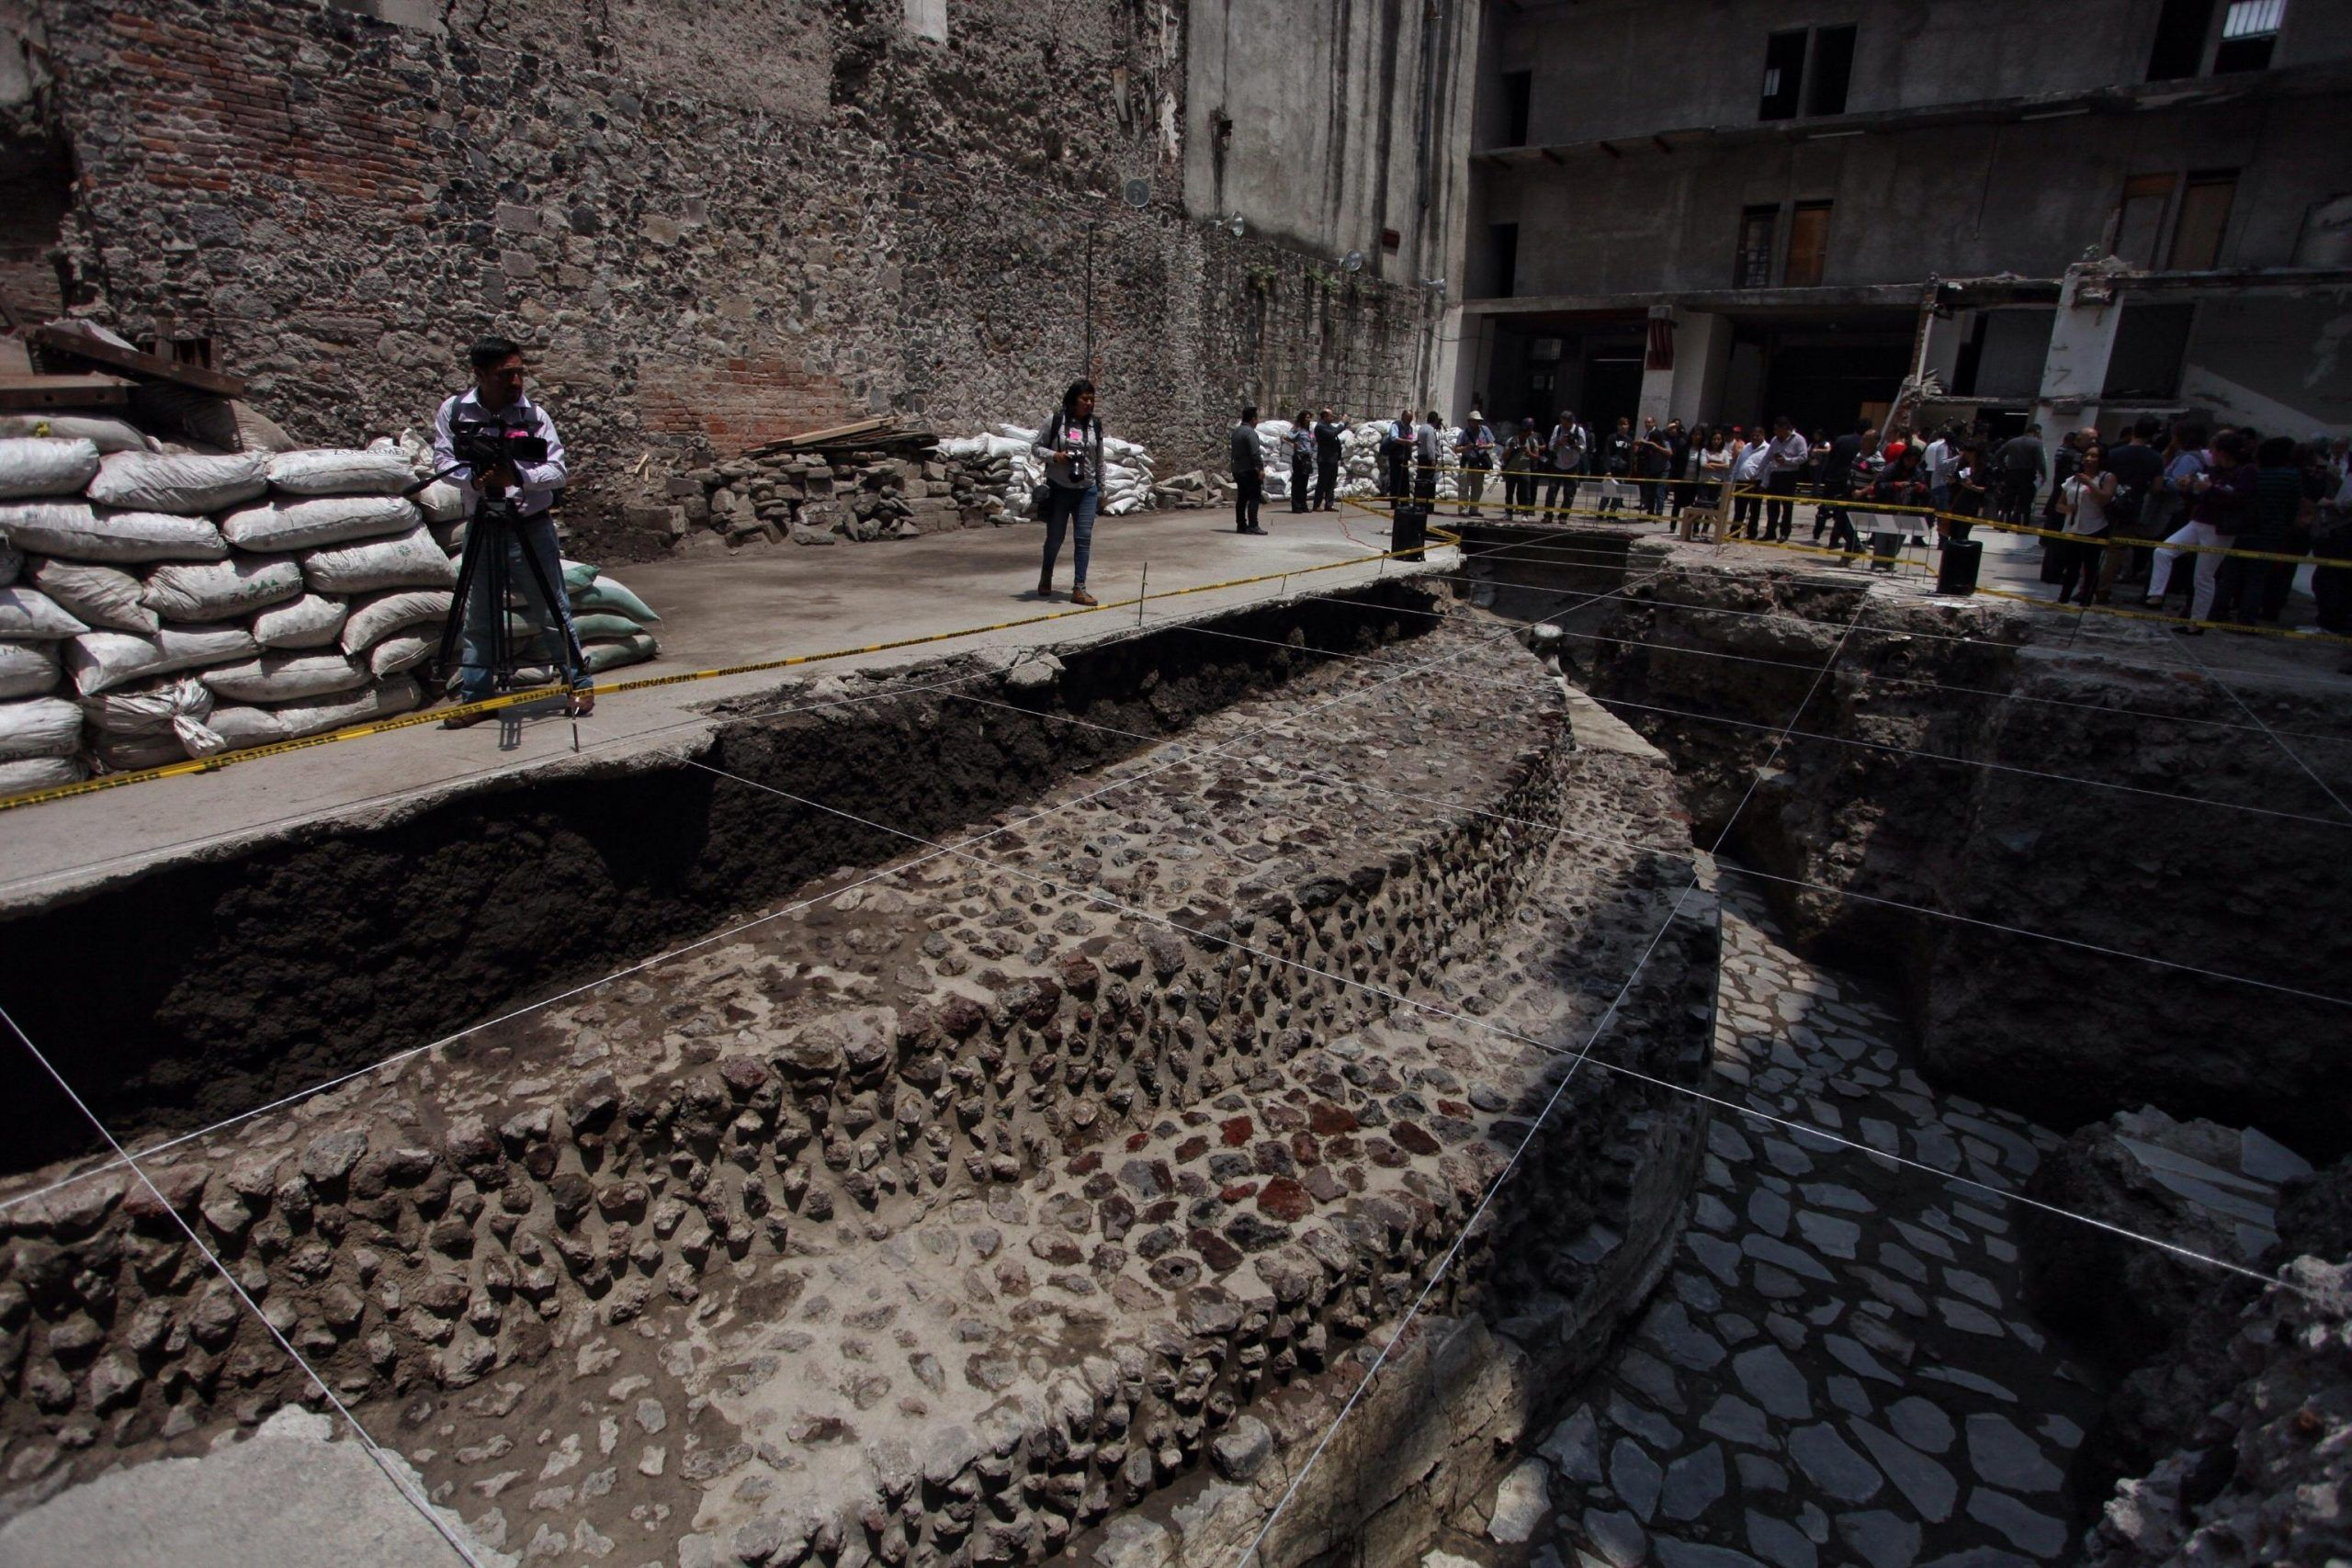 Mexico's INAH presents two new findings at the ancient city of Mexico Tenochtitlan